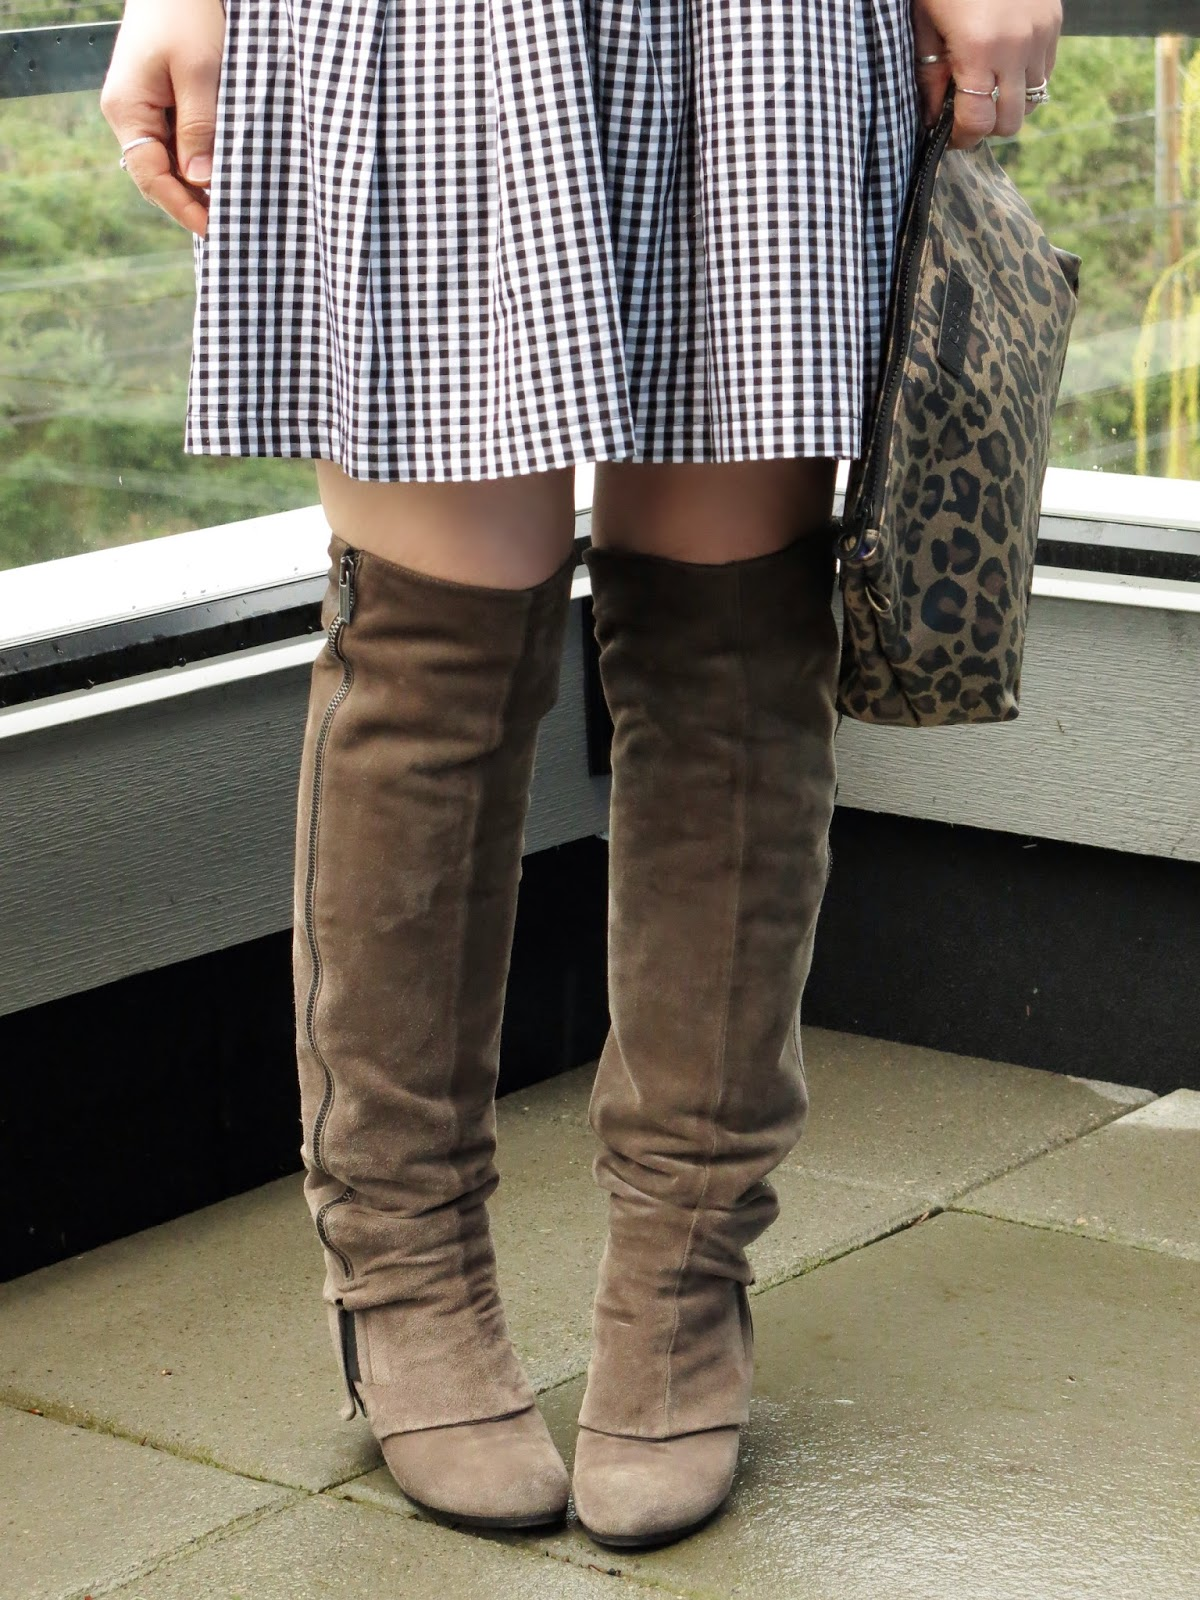 gingham skirt, over-the-knee boots, and leopard clutch